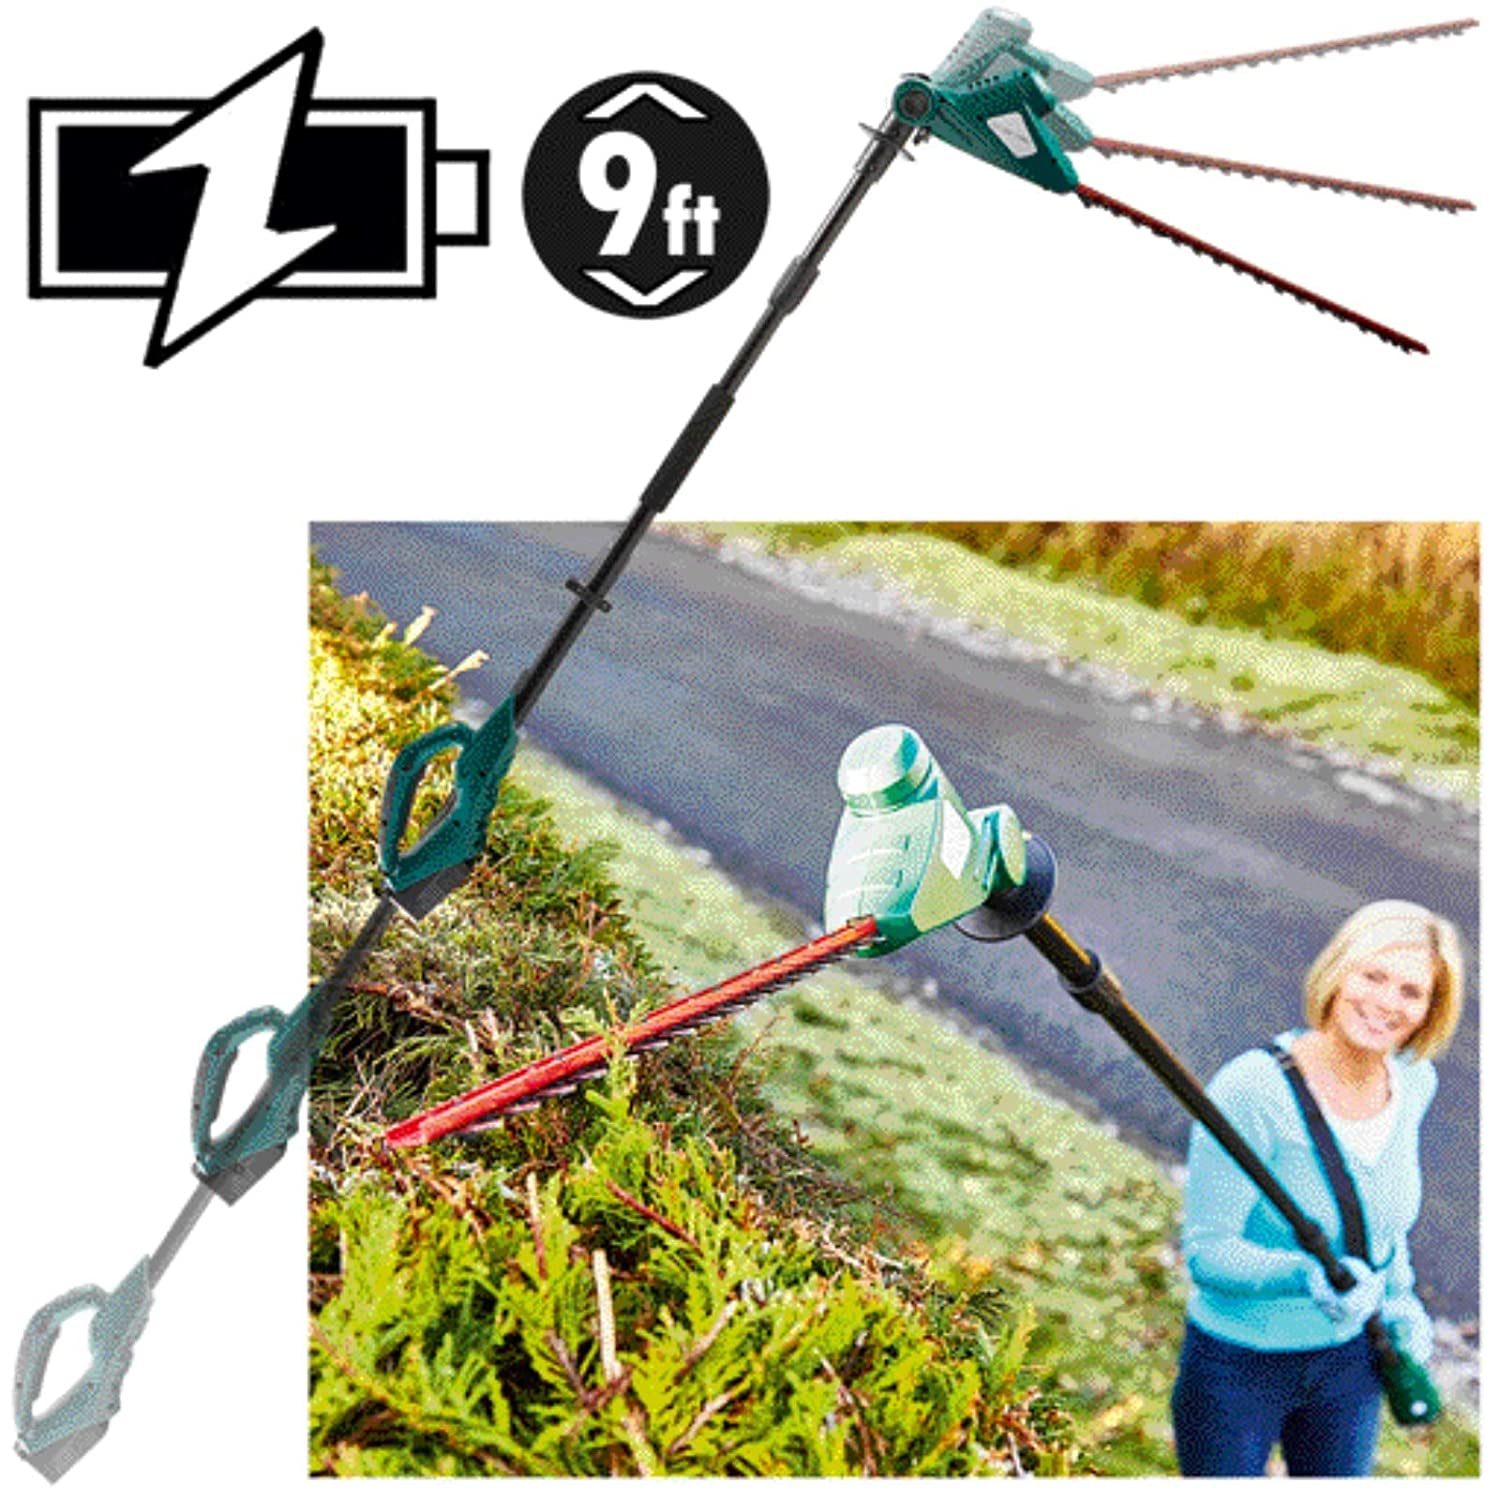 Bergman Cordless Electric Garden Hedge Trimmer/Cutter / Pruner With 3m Telescopic Extending Pole